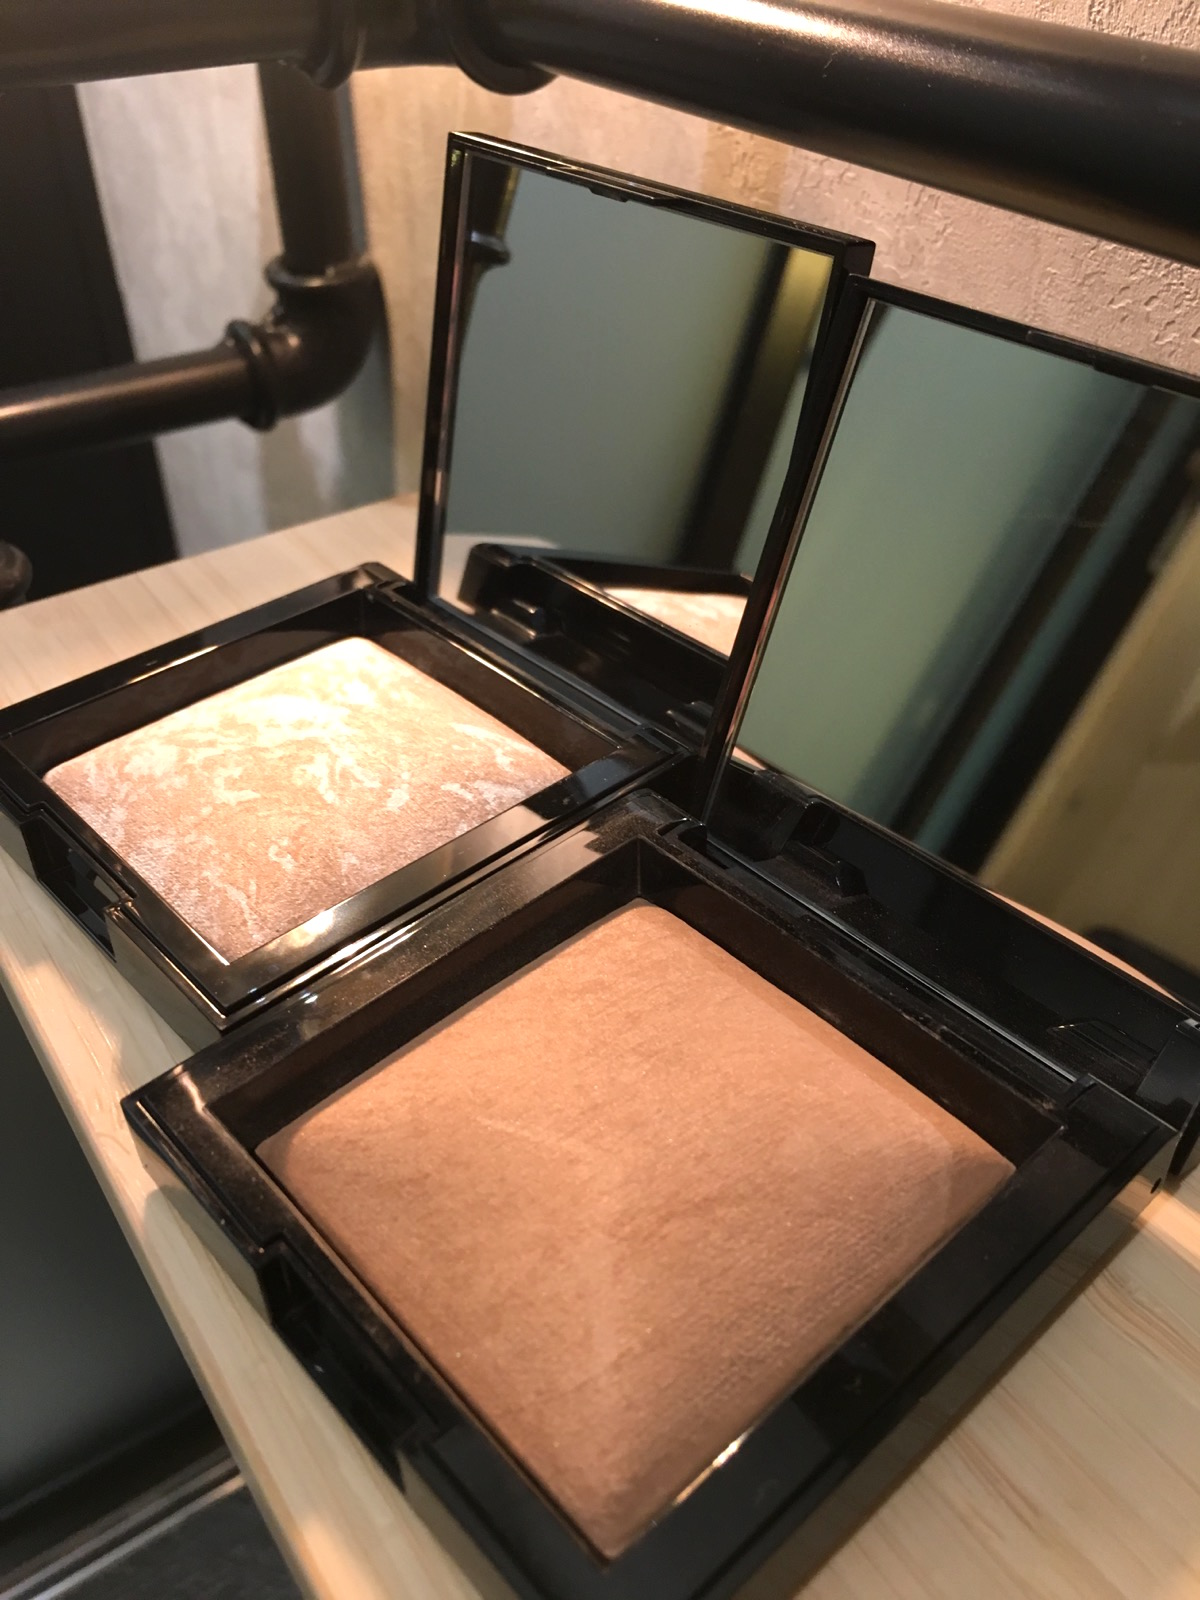 Bronzing powder & highlighter, bareminerals skönhetssnack.se